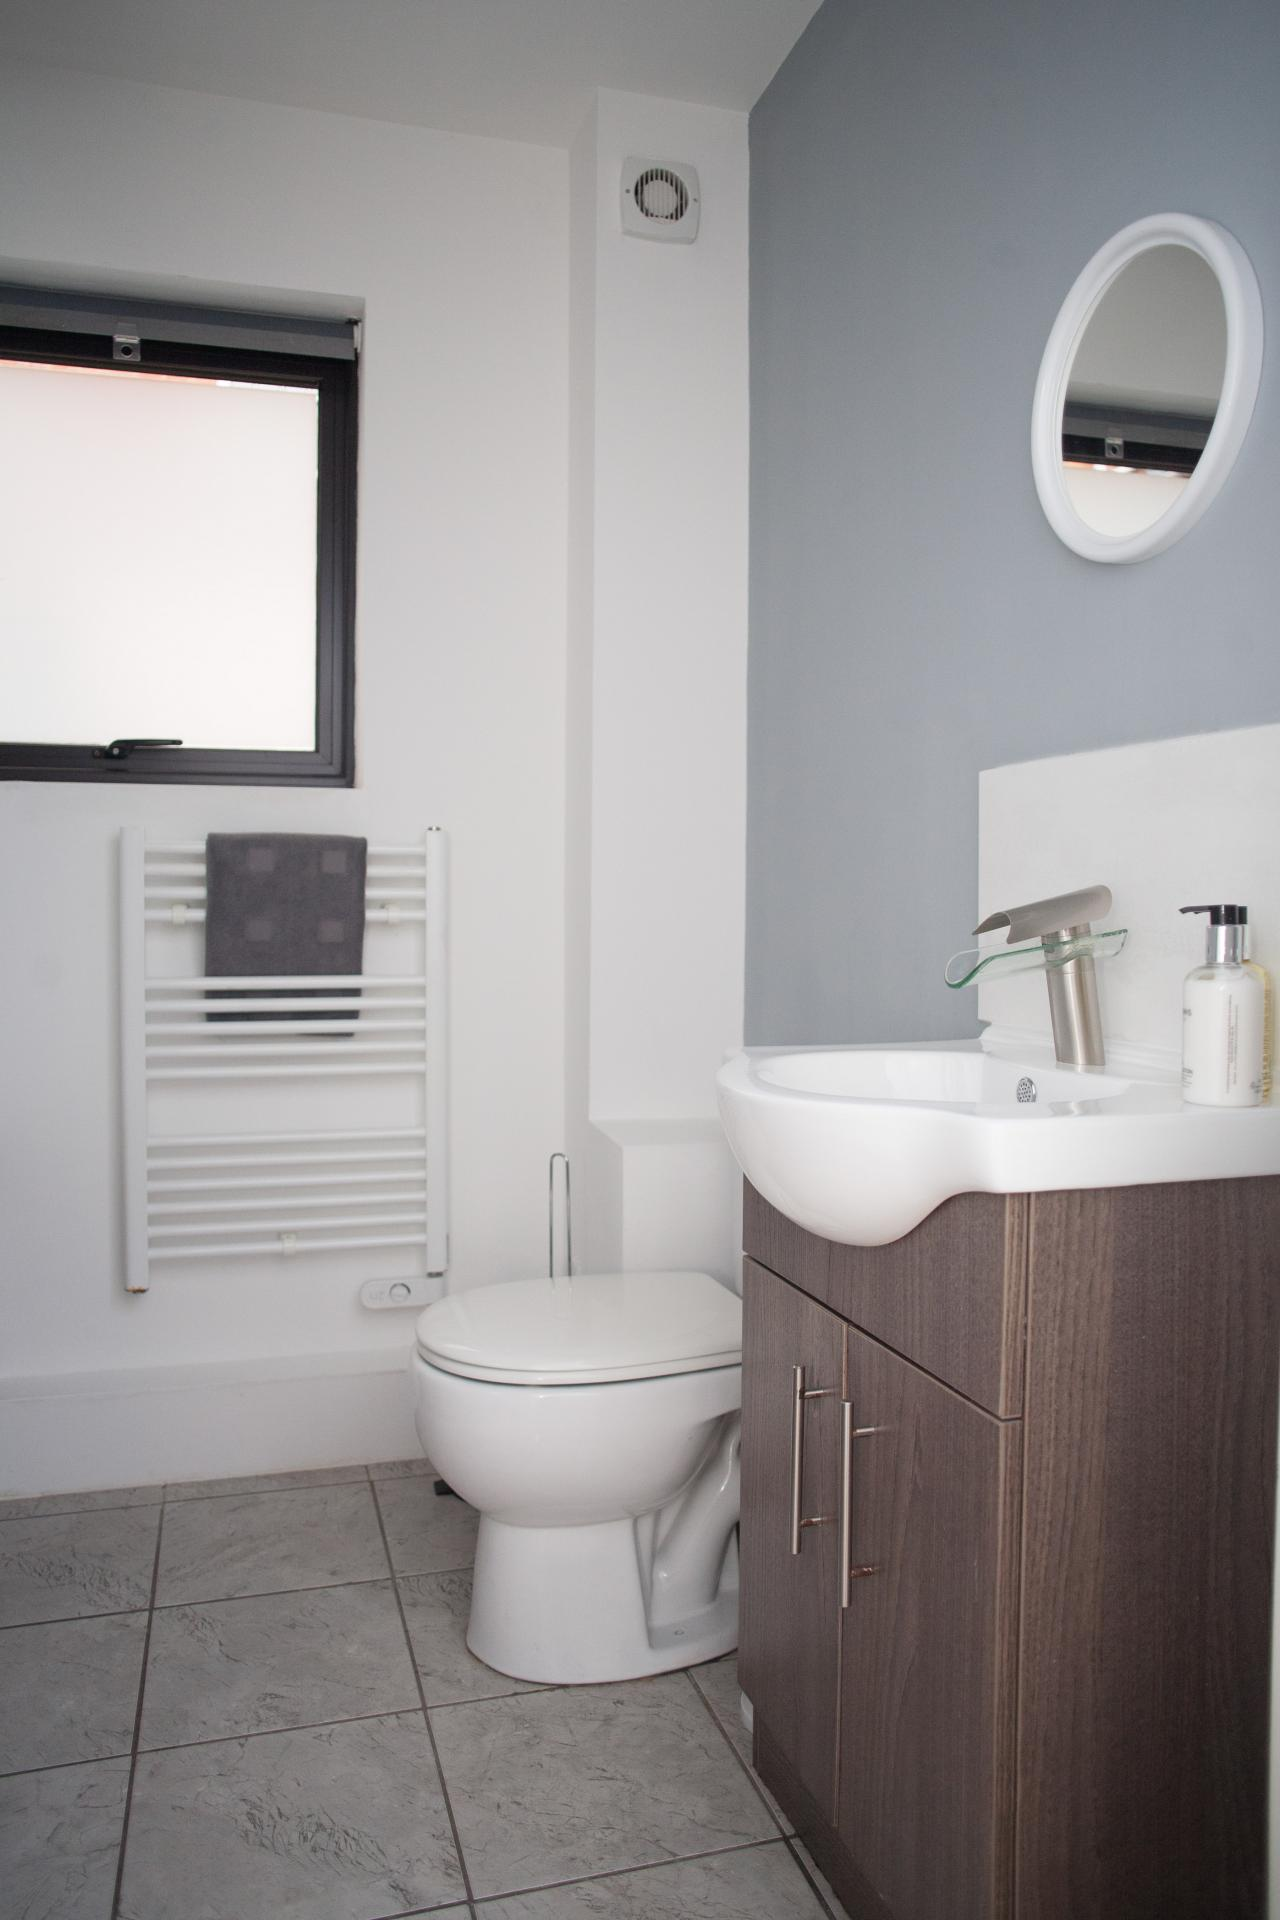 Bathroom at Quire Court Apartments, Centre, Gloucester - Citybase Apartments